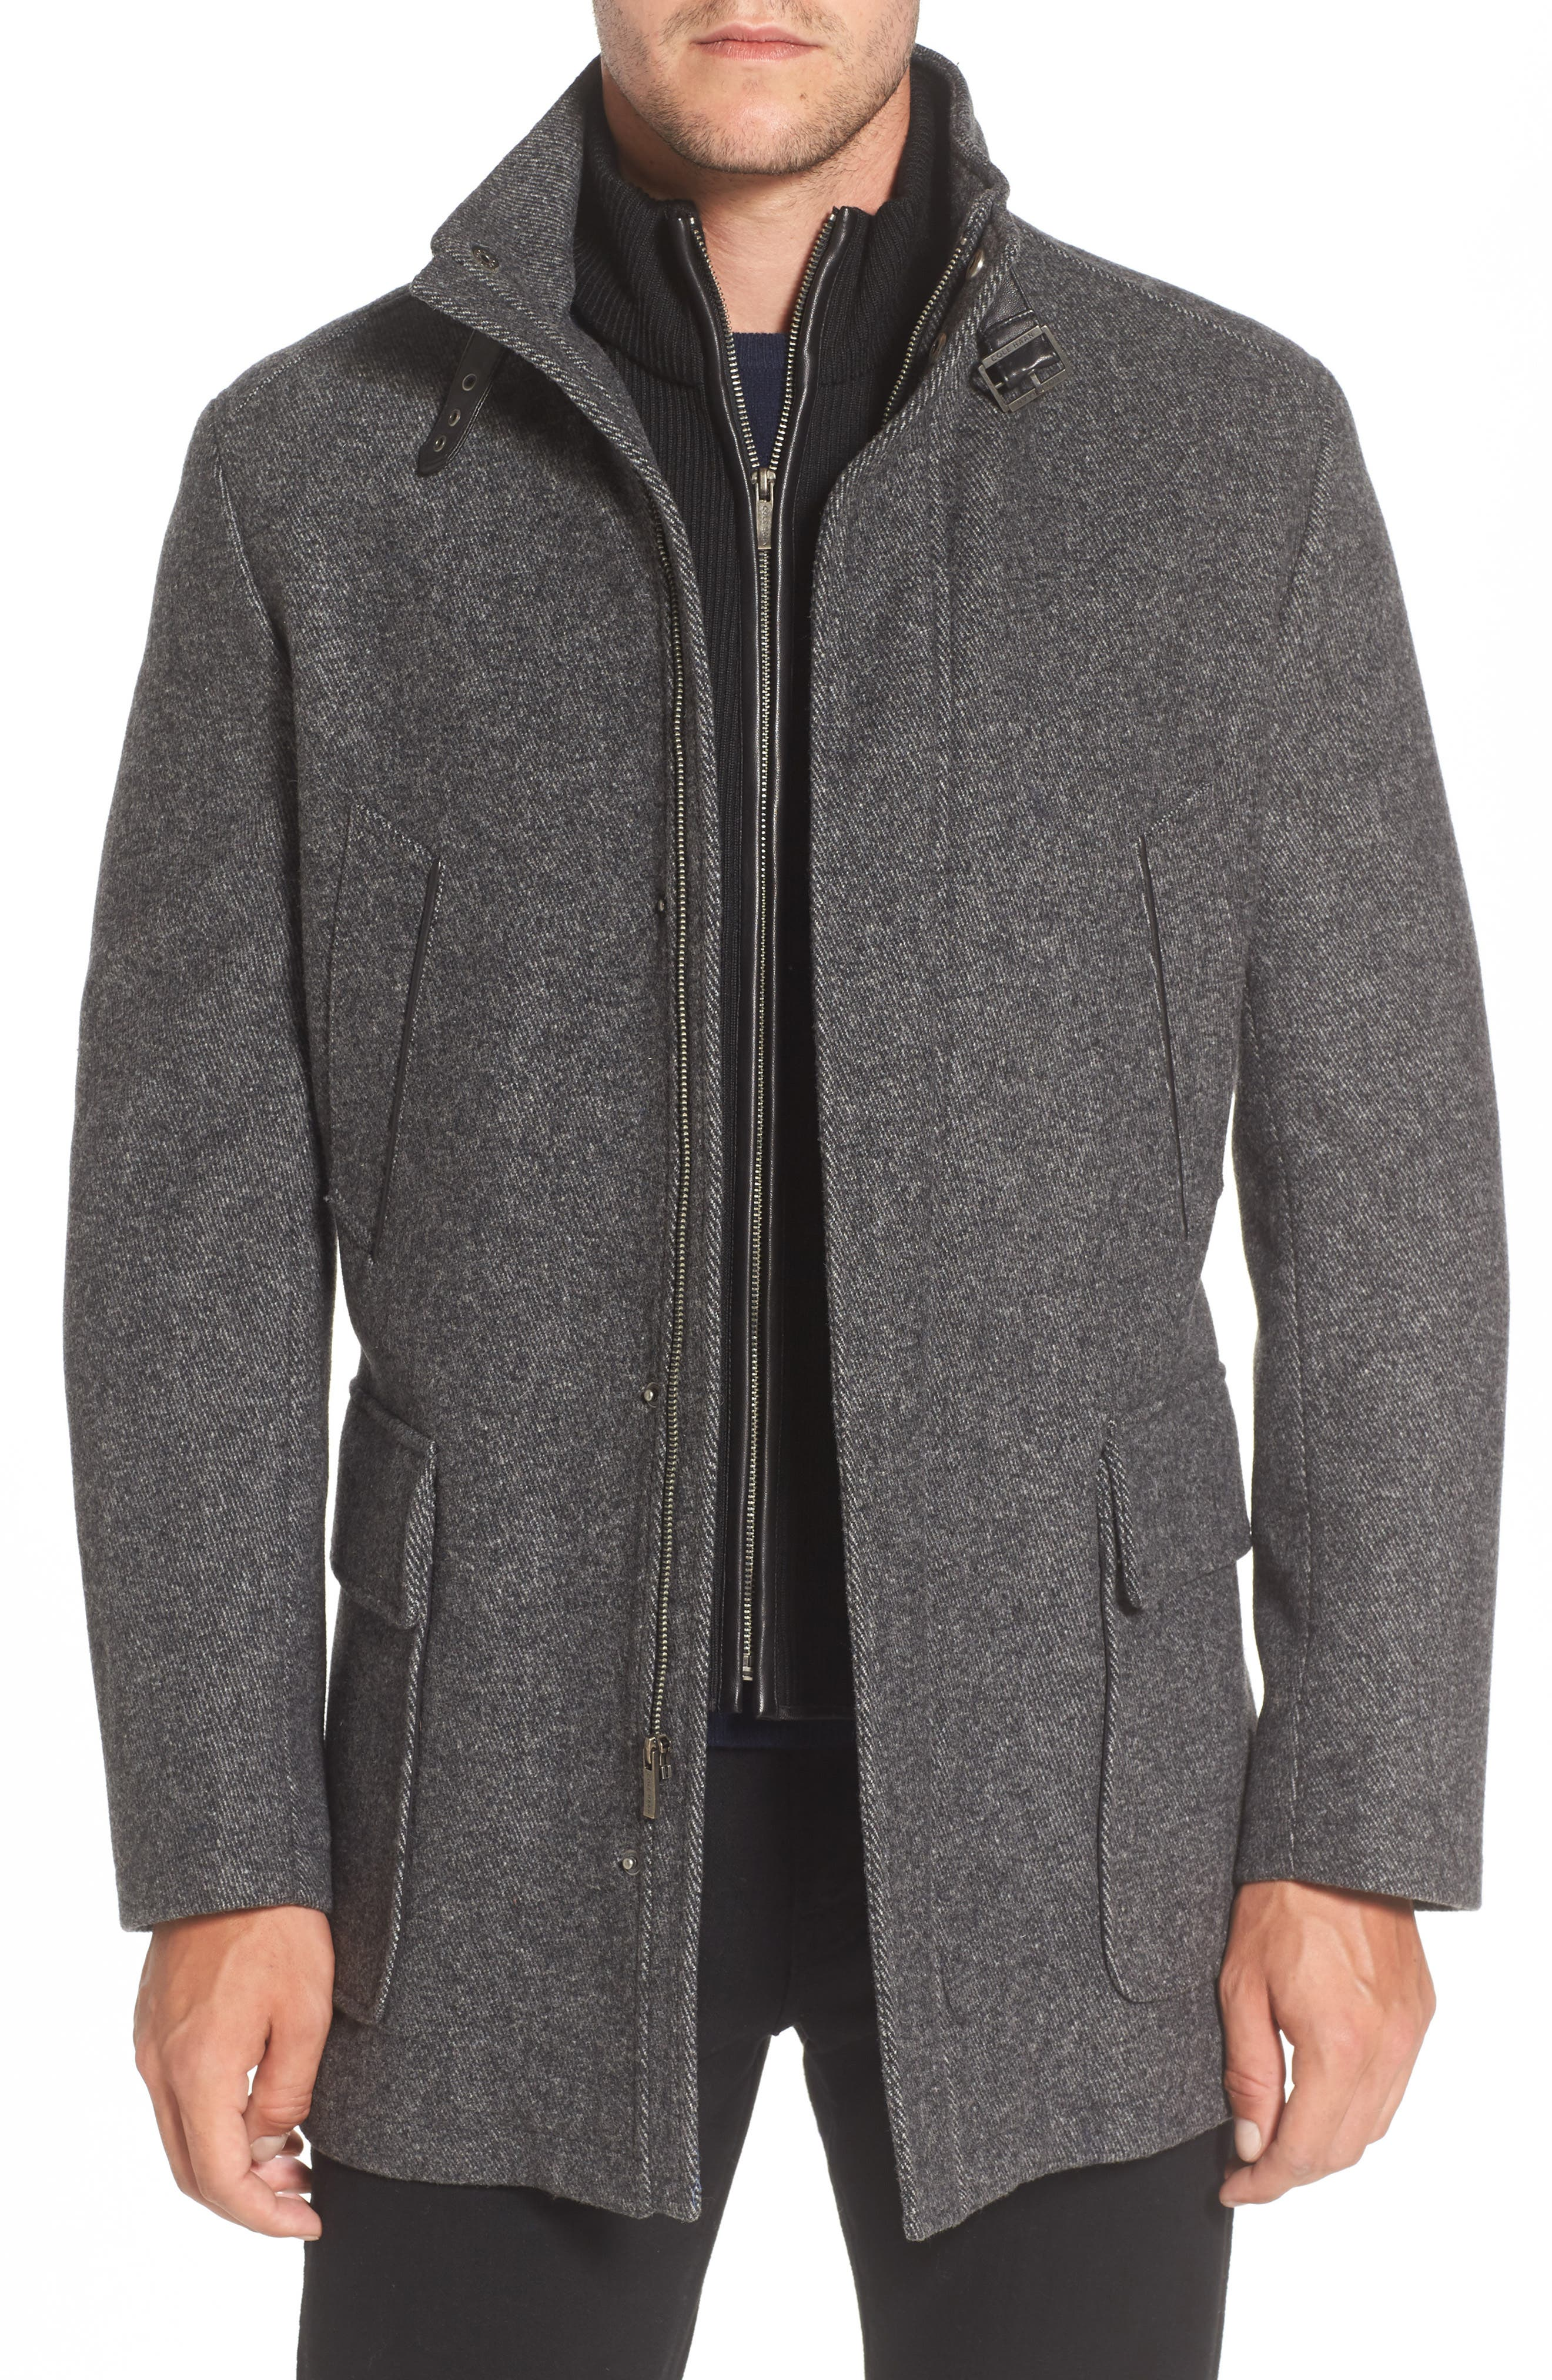 Wool Blend Car Coat with Removable Knit Bib,                             Main thumbnail 1, color,                             073